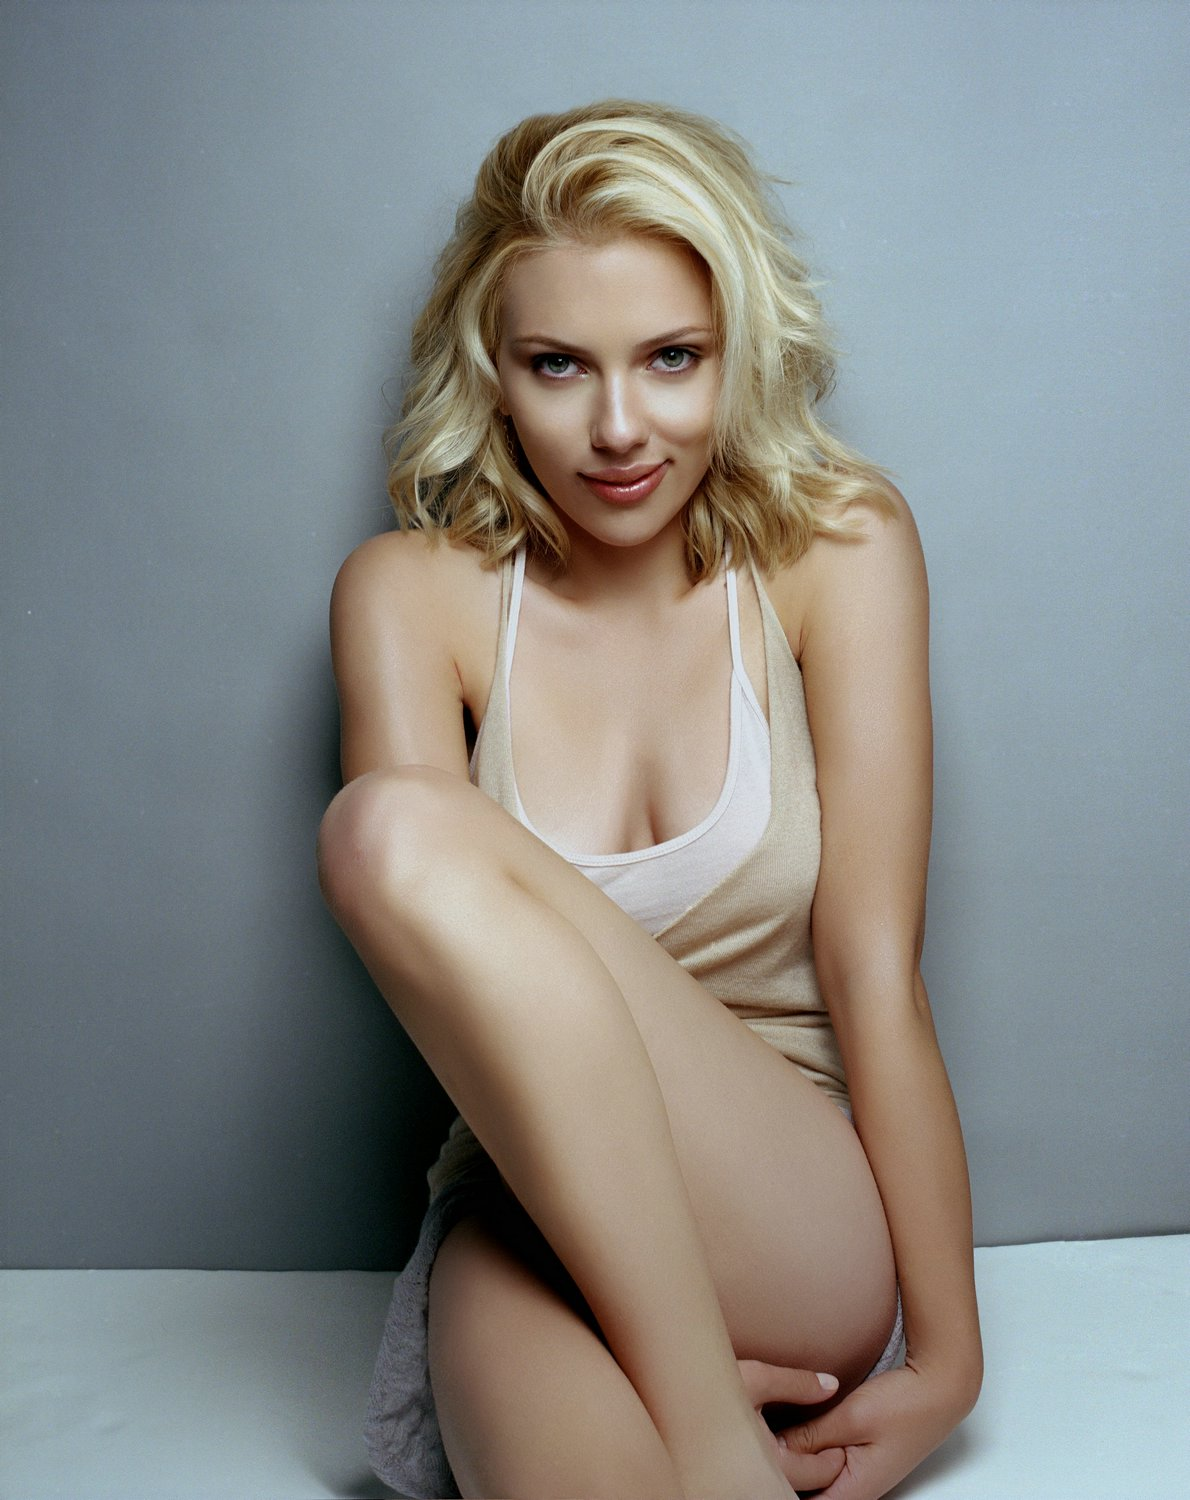 hot-hollywood-actress-scarlett-johansson